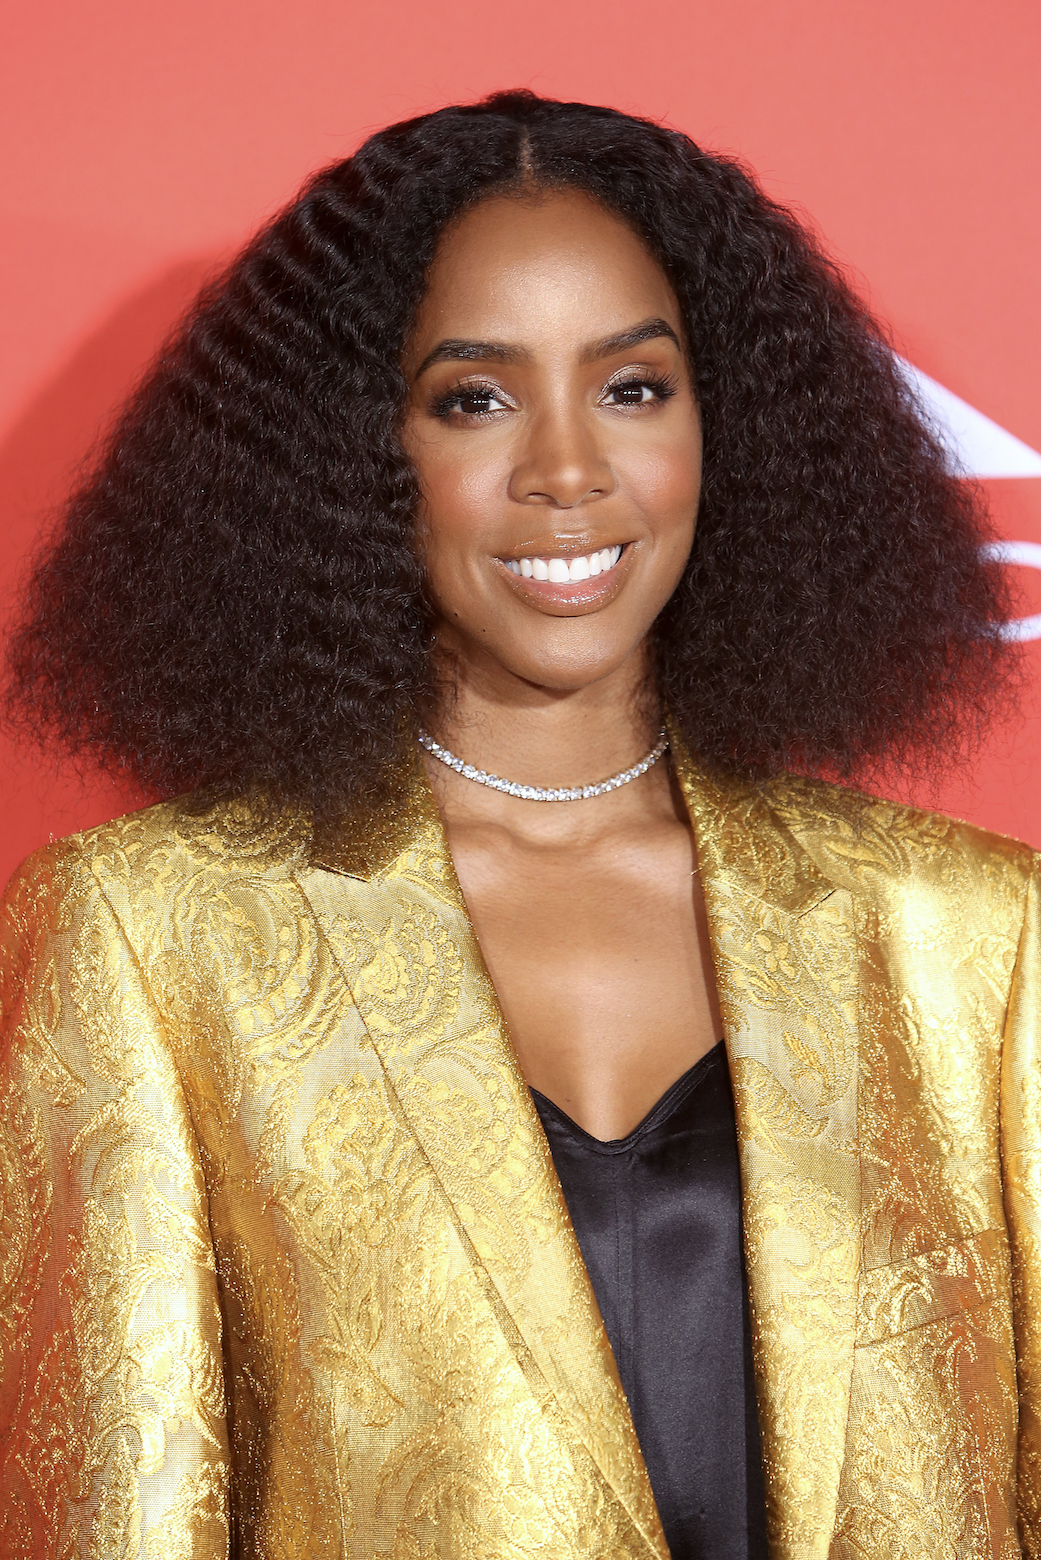 Kelly Rowland Stop thinking that short hair has to be straight. Big hair and bob cuts look absolutely beautiful together, as proven by my girl Kelly Rowland's blown-out, crinkly curls.